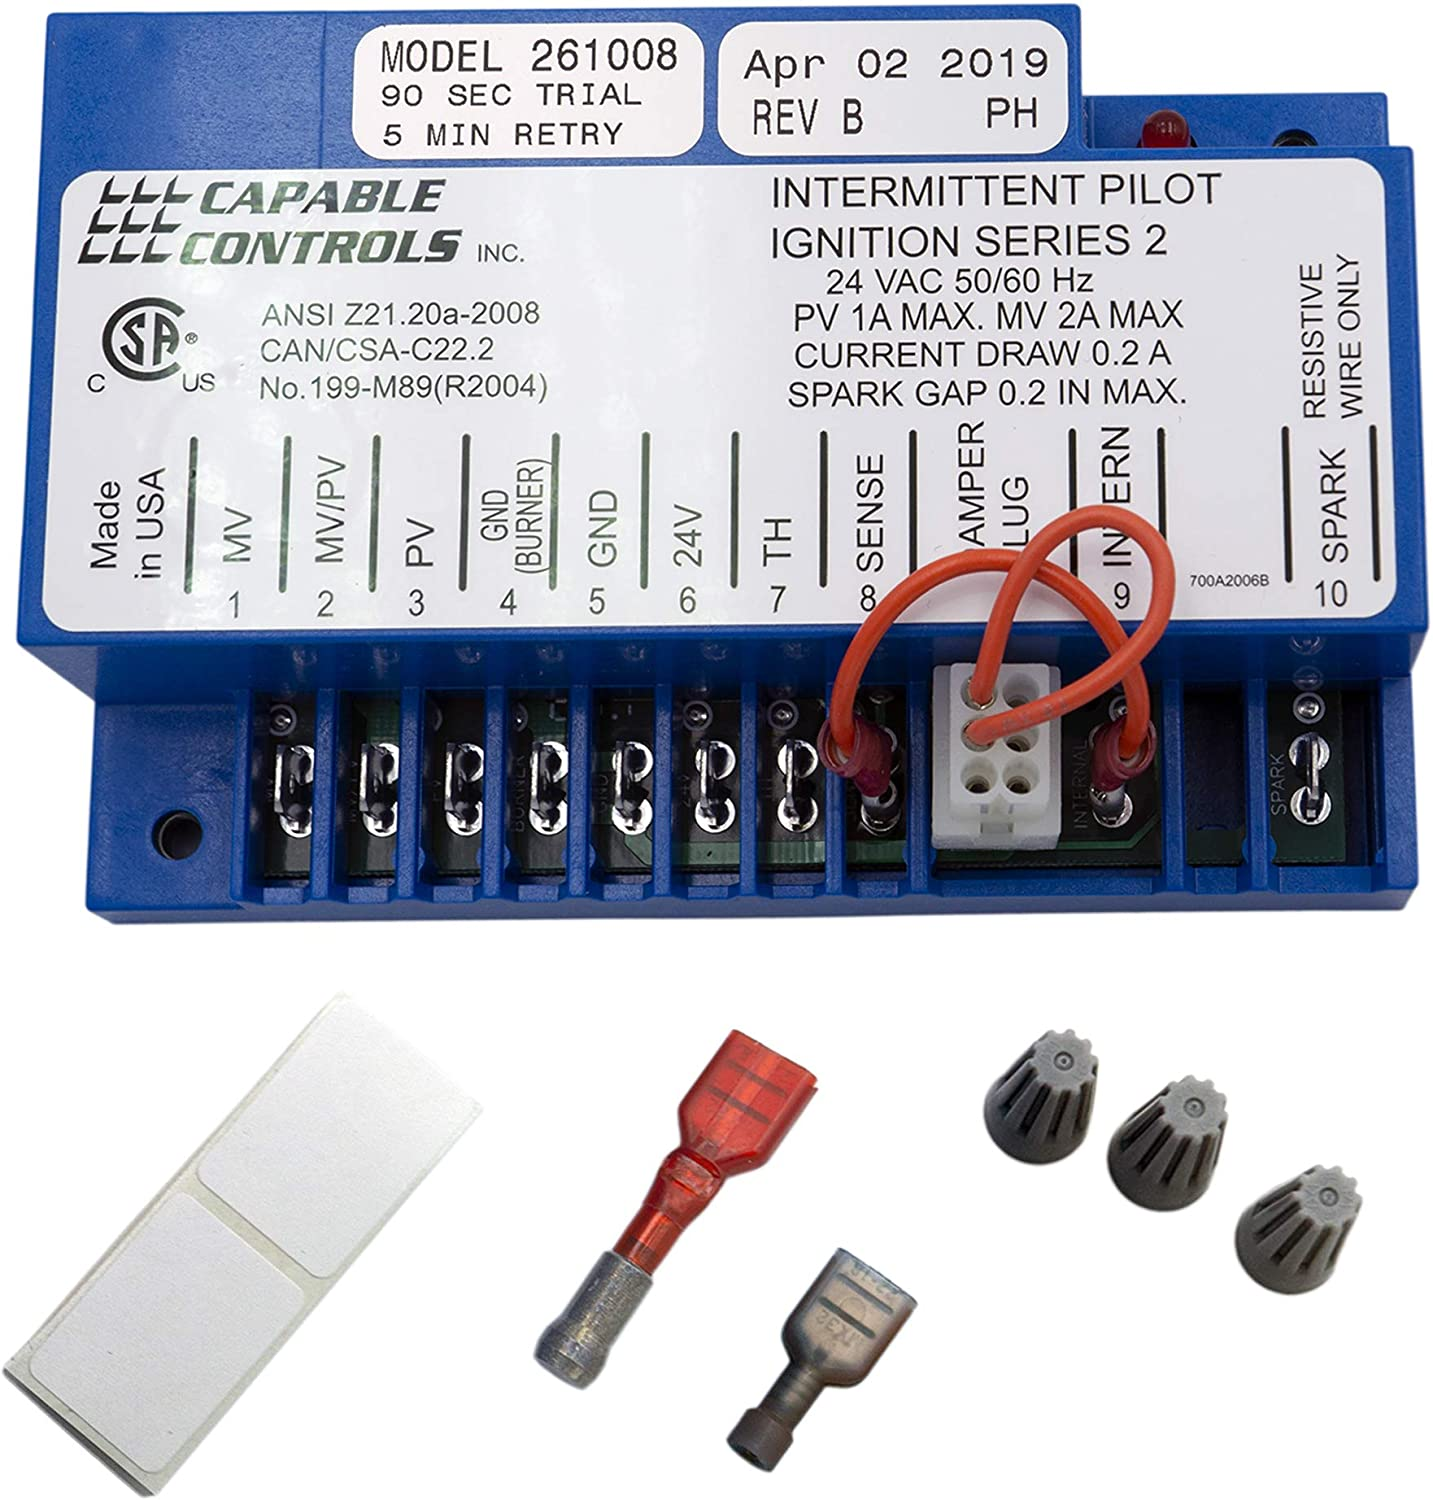 Supplying Demand S8610U1003 Furnace Ignition Control Replaces S8610U3009 Compatible With Honeywell